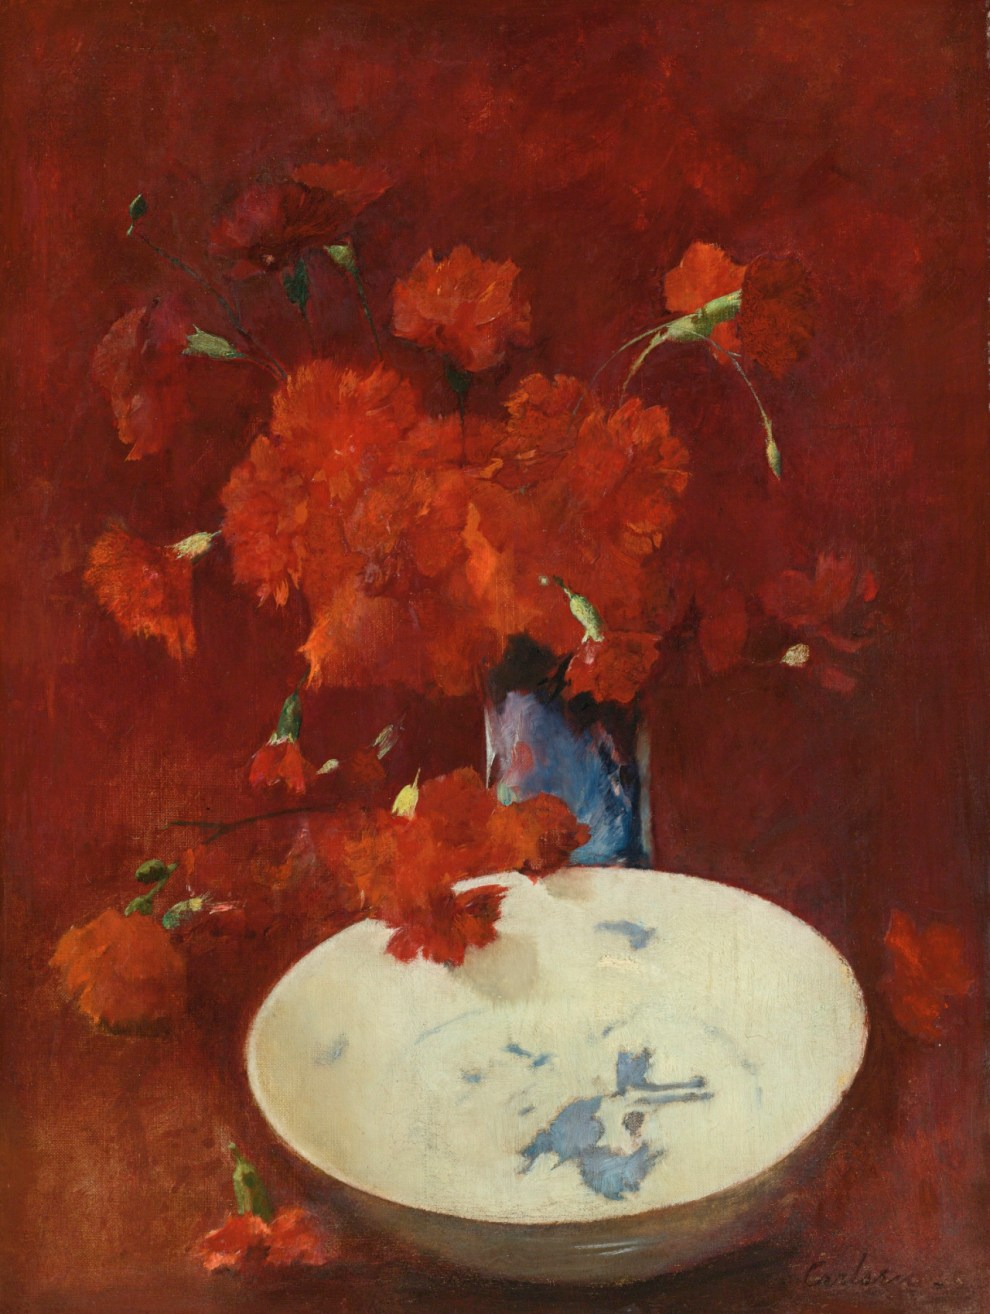 Emil Carlsen : Red carnations and delft, 1875.